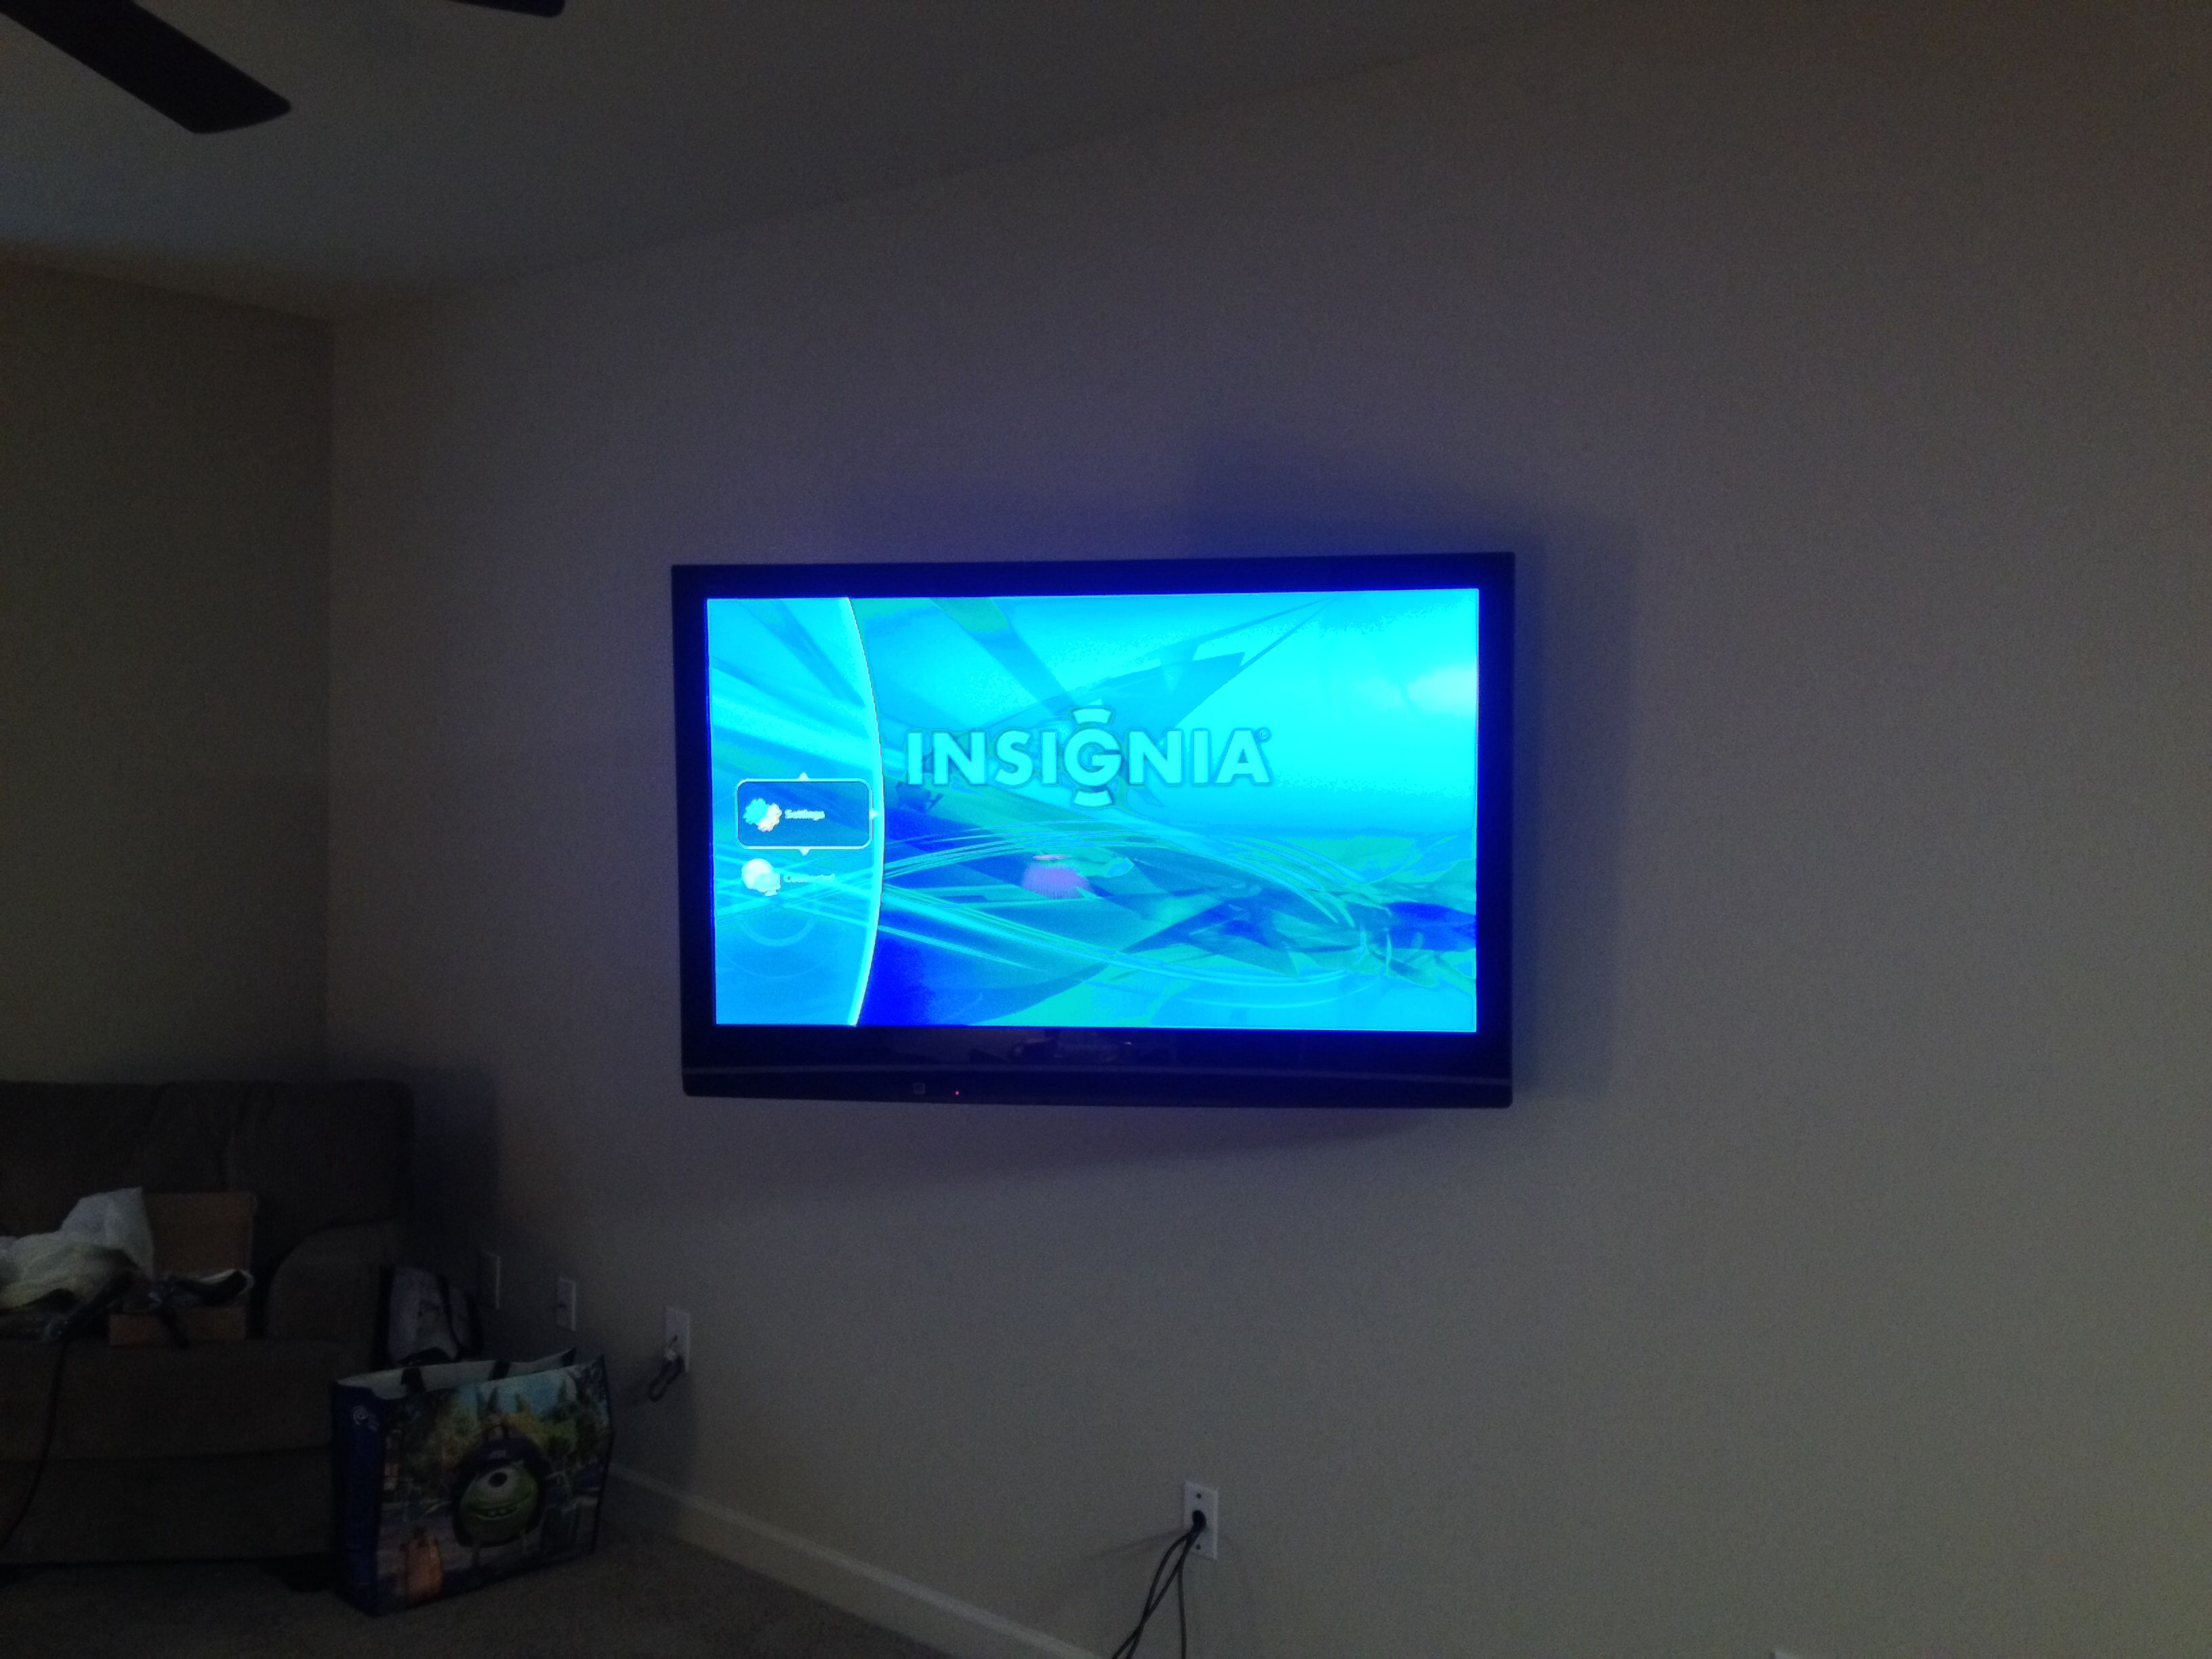 Charlotte Home Theater Installation. Projector, screen, sound bar ...